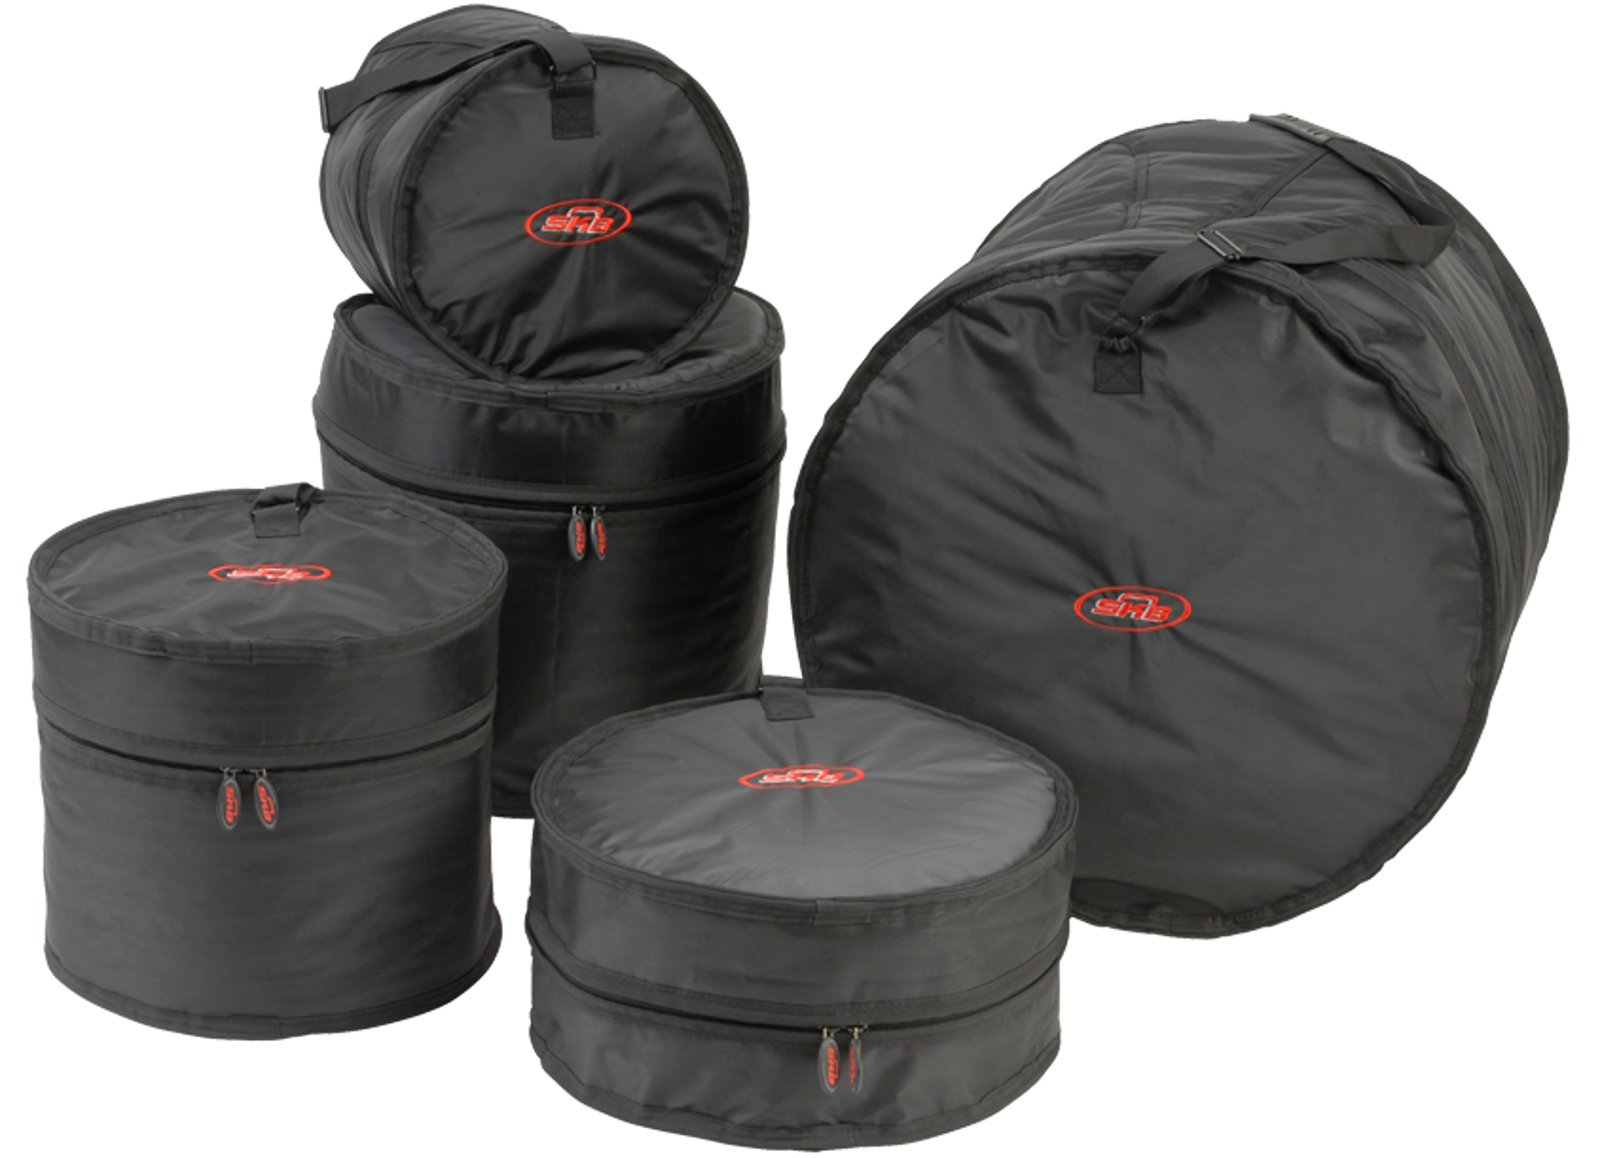 skb cases 1skb dbs2 drum soft gig bag set 2 full compass. Black Bedroom Furniture Sets. Home Design Ideas